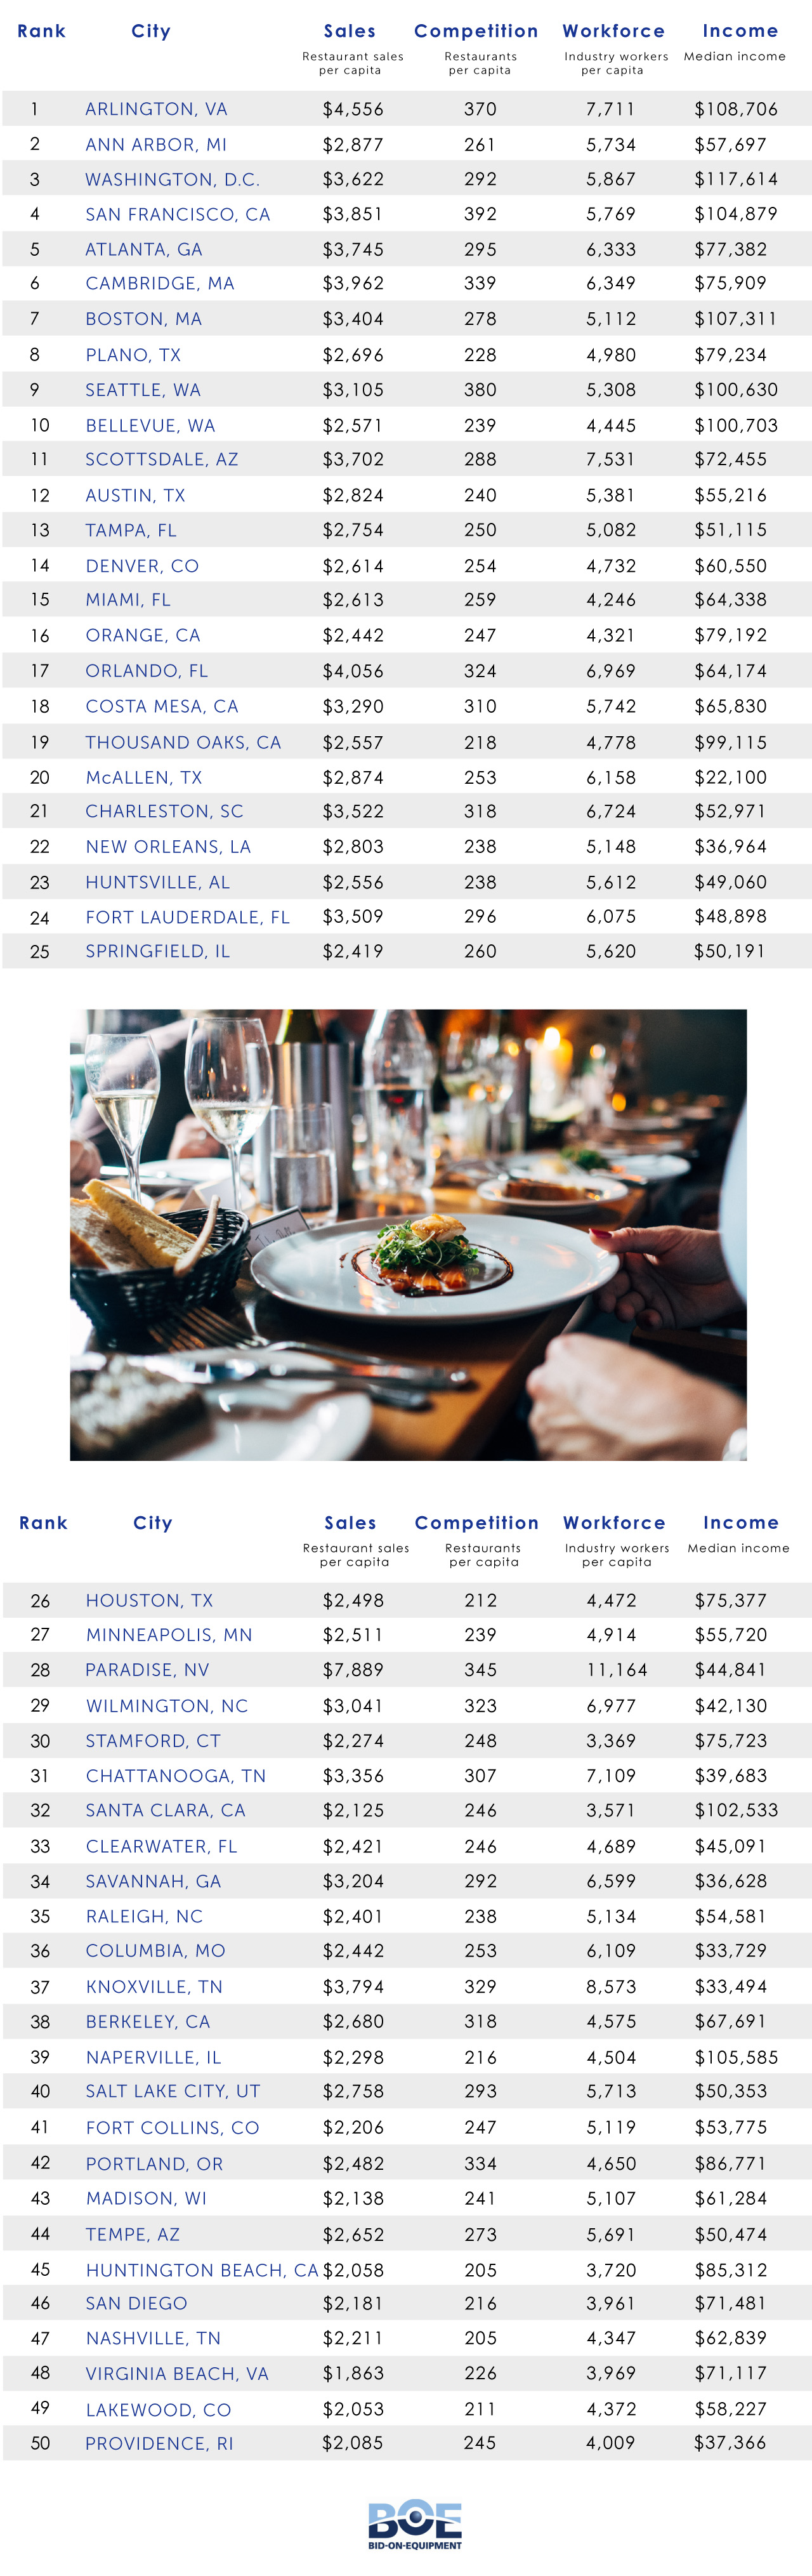 Best Cities To Start A Restaurant [Infographic]